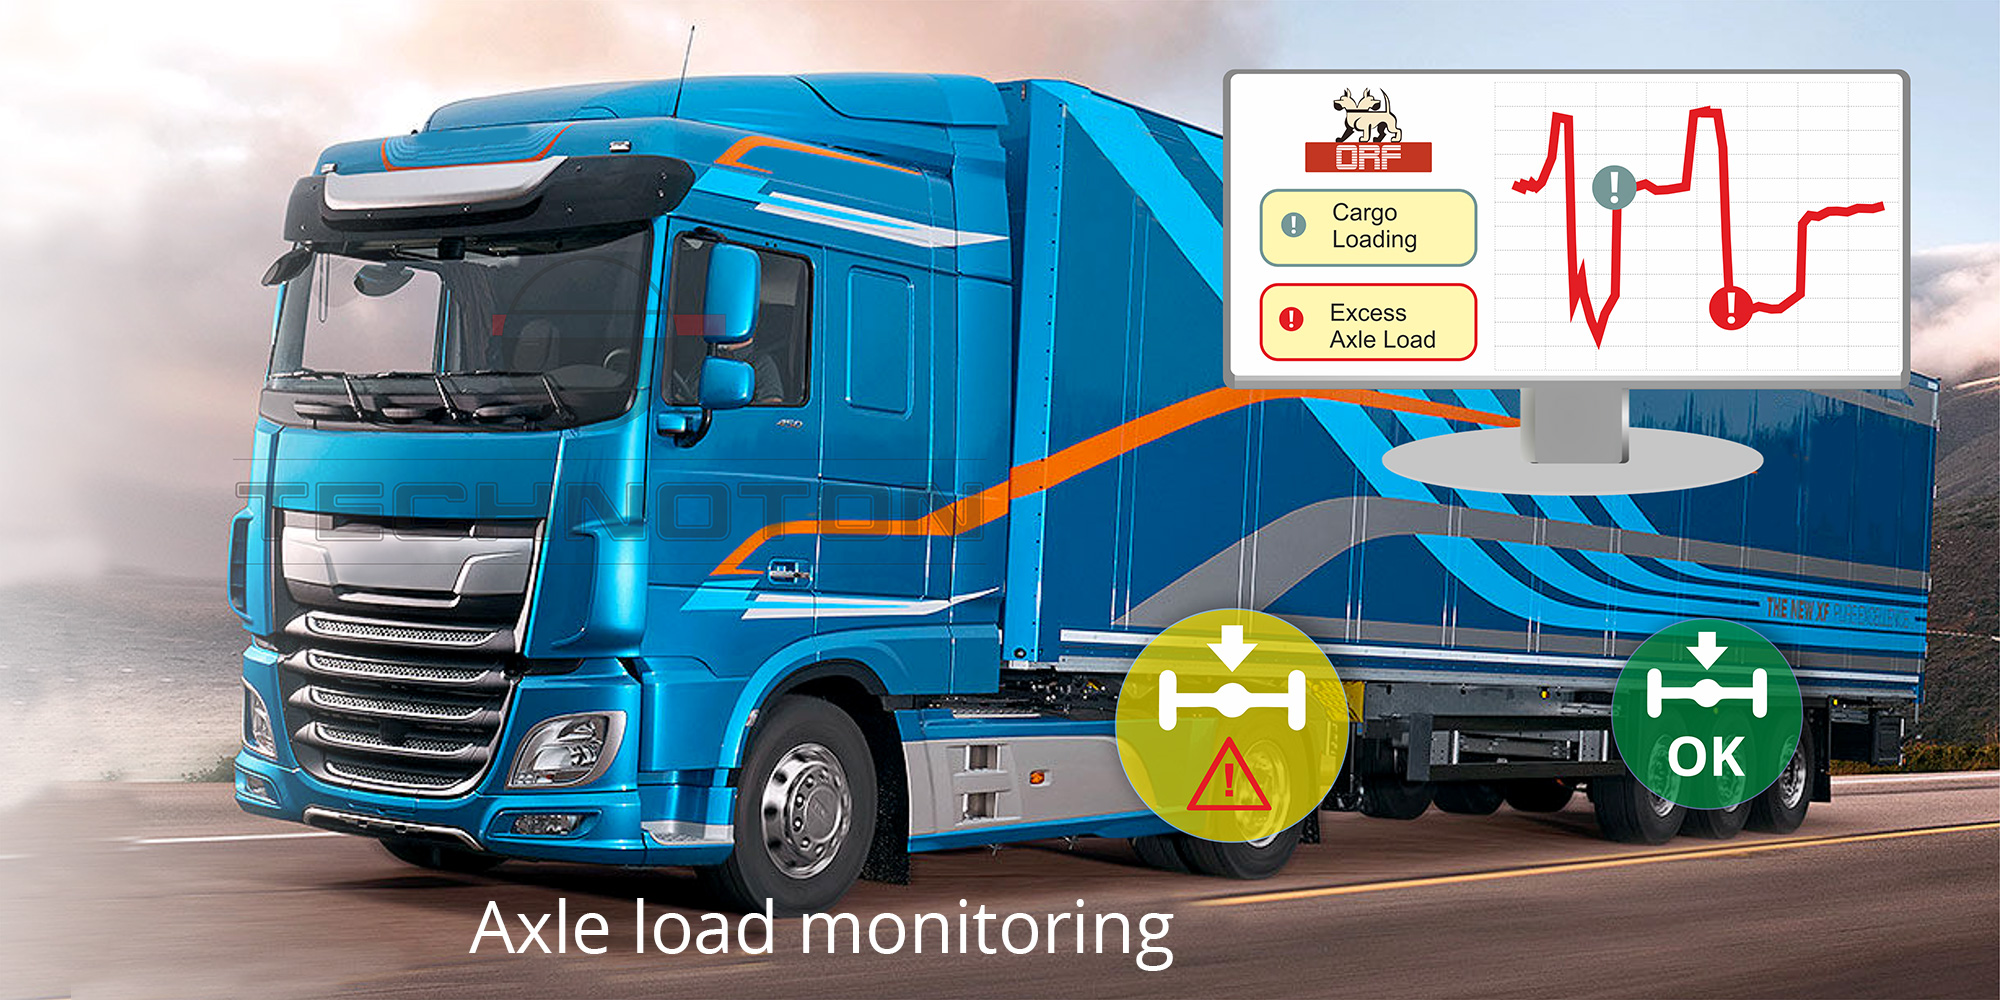 Axle load monitoring